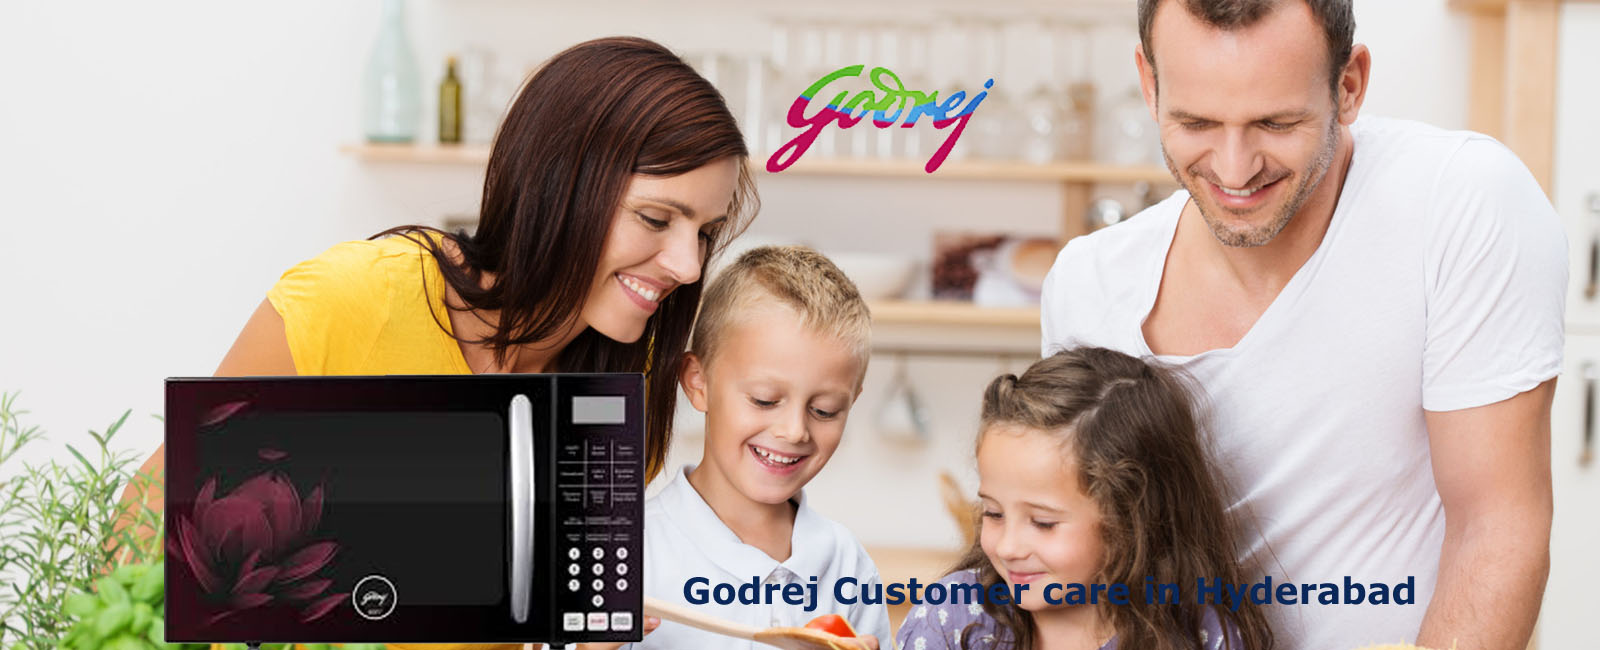 Godrej Microwave Oven Repair Service Center in Hyderabad -